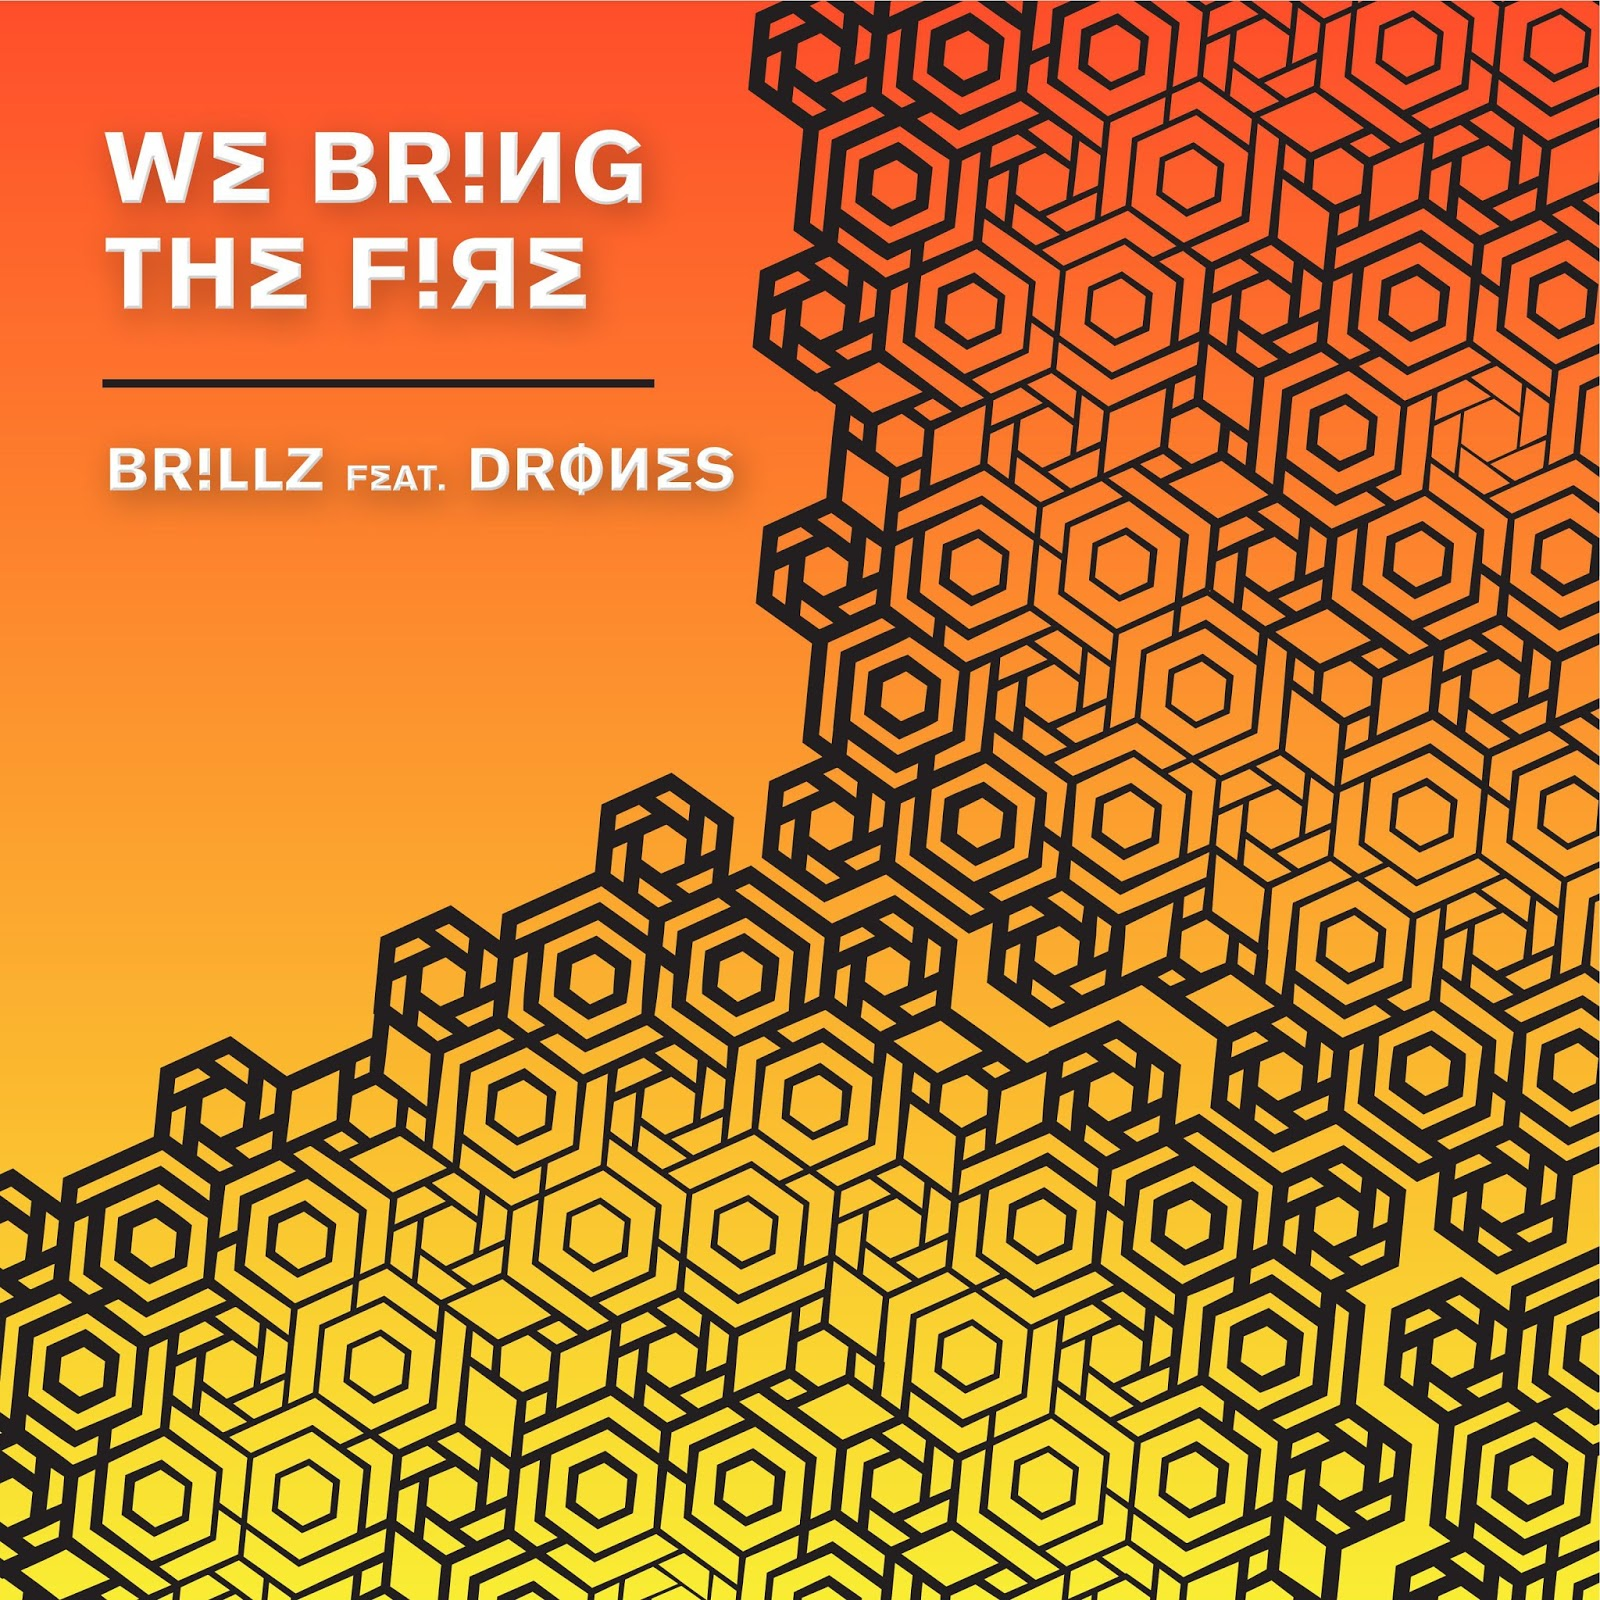 Brillz - We Bring the Fire (feat. Drones) - Single Cover